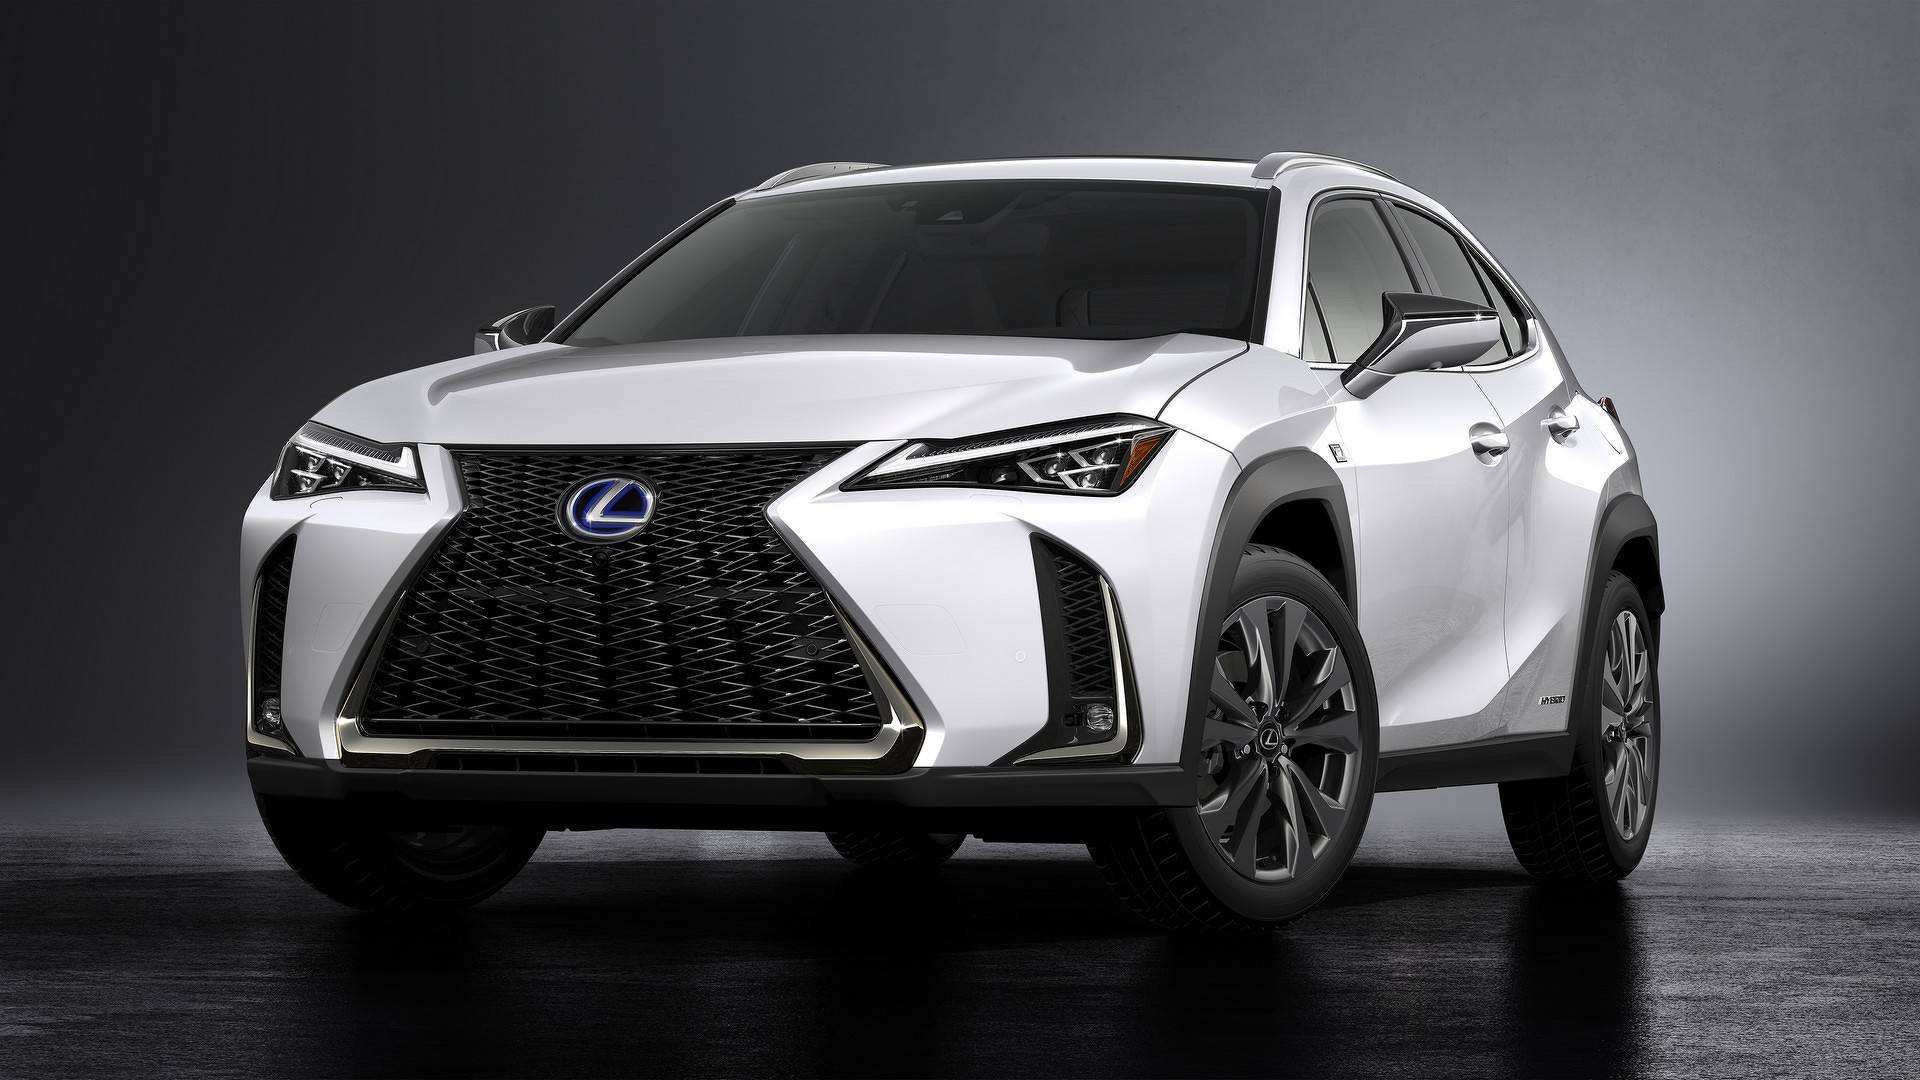 39 All New Lexus 2019 Models Overview